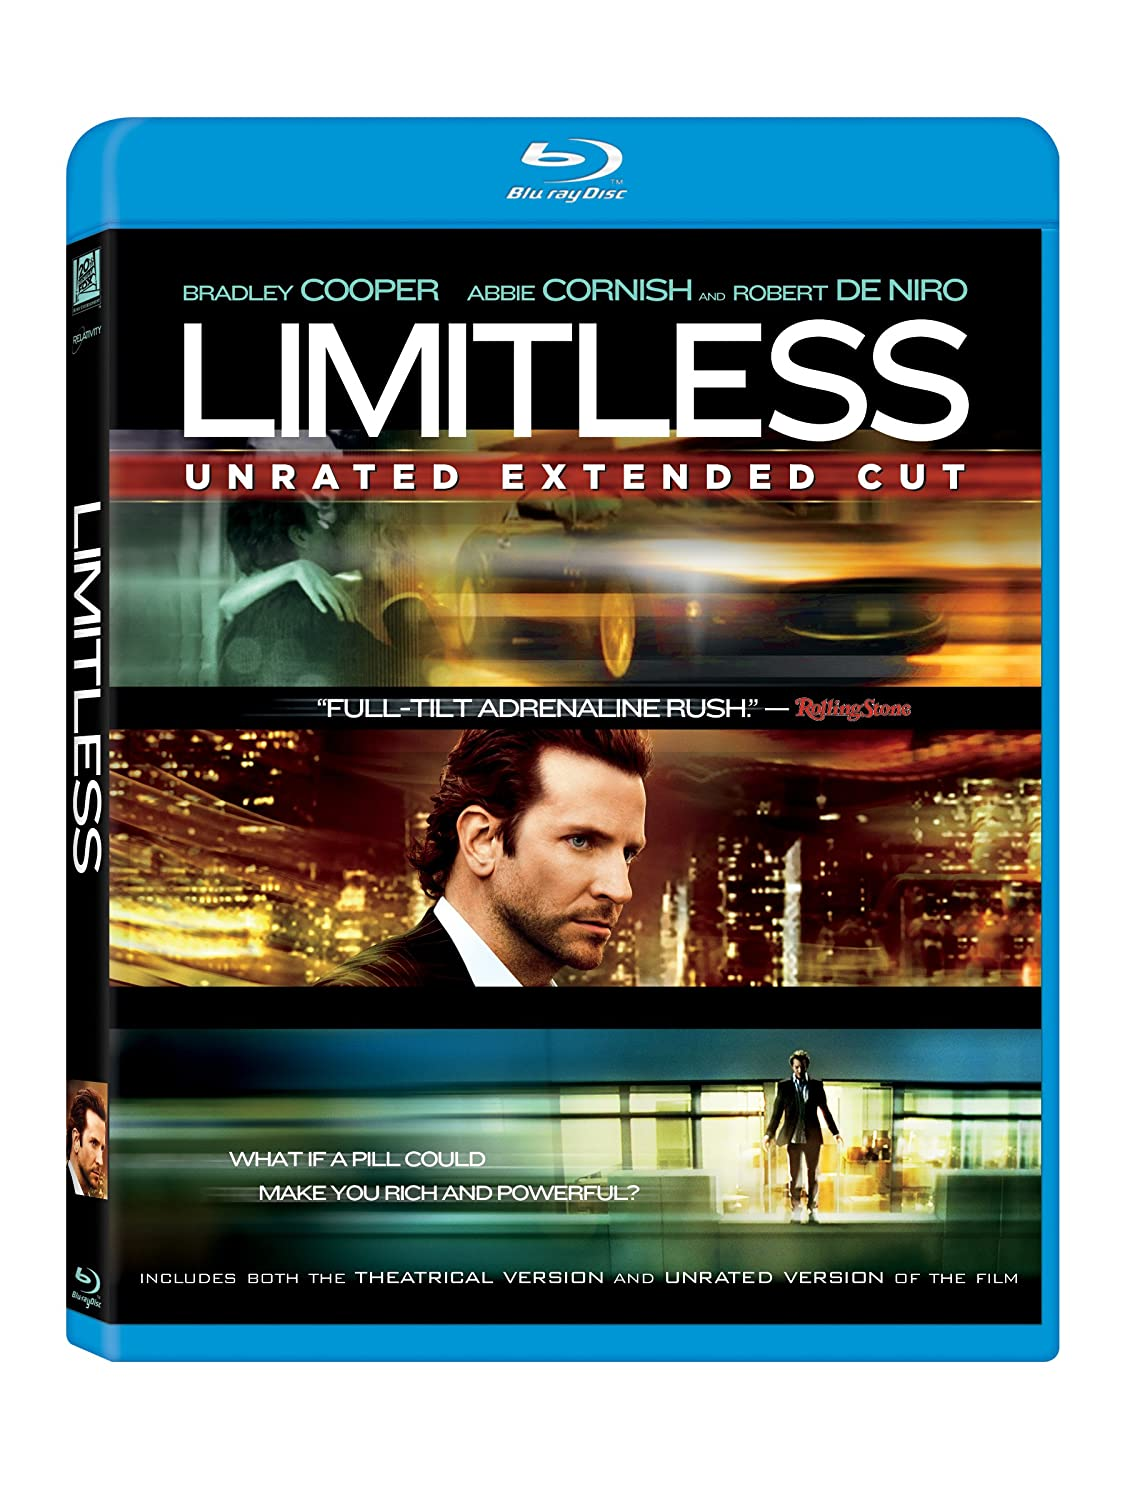 Amazon.com: Limitless [Blu-ray]: Bradley Cooper, Anna Friel, Abbie Cornish,  Robert De Niro, Andrew Howard, Johnny Whitworth, Tomas Arana, Robert John  Burke, Darren Goldstein, Ned Eisenberg, T.V. Carpio, Richard Bekins, Neil  Burger, Bradley